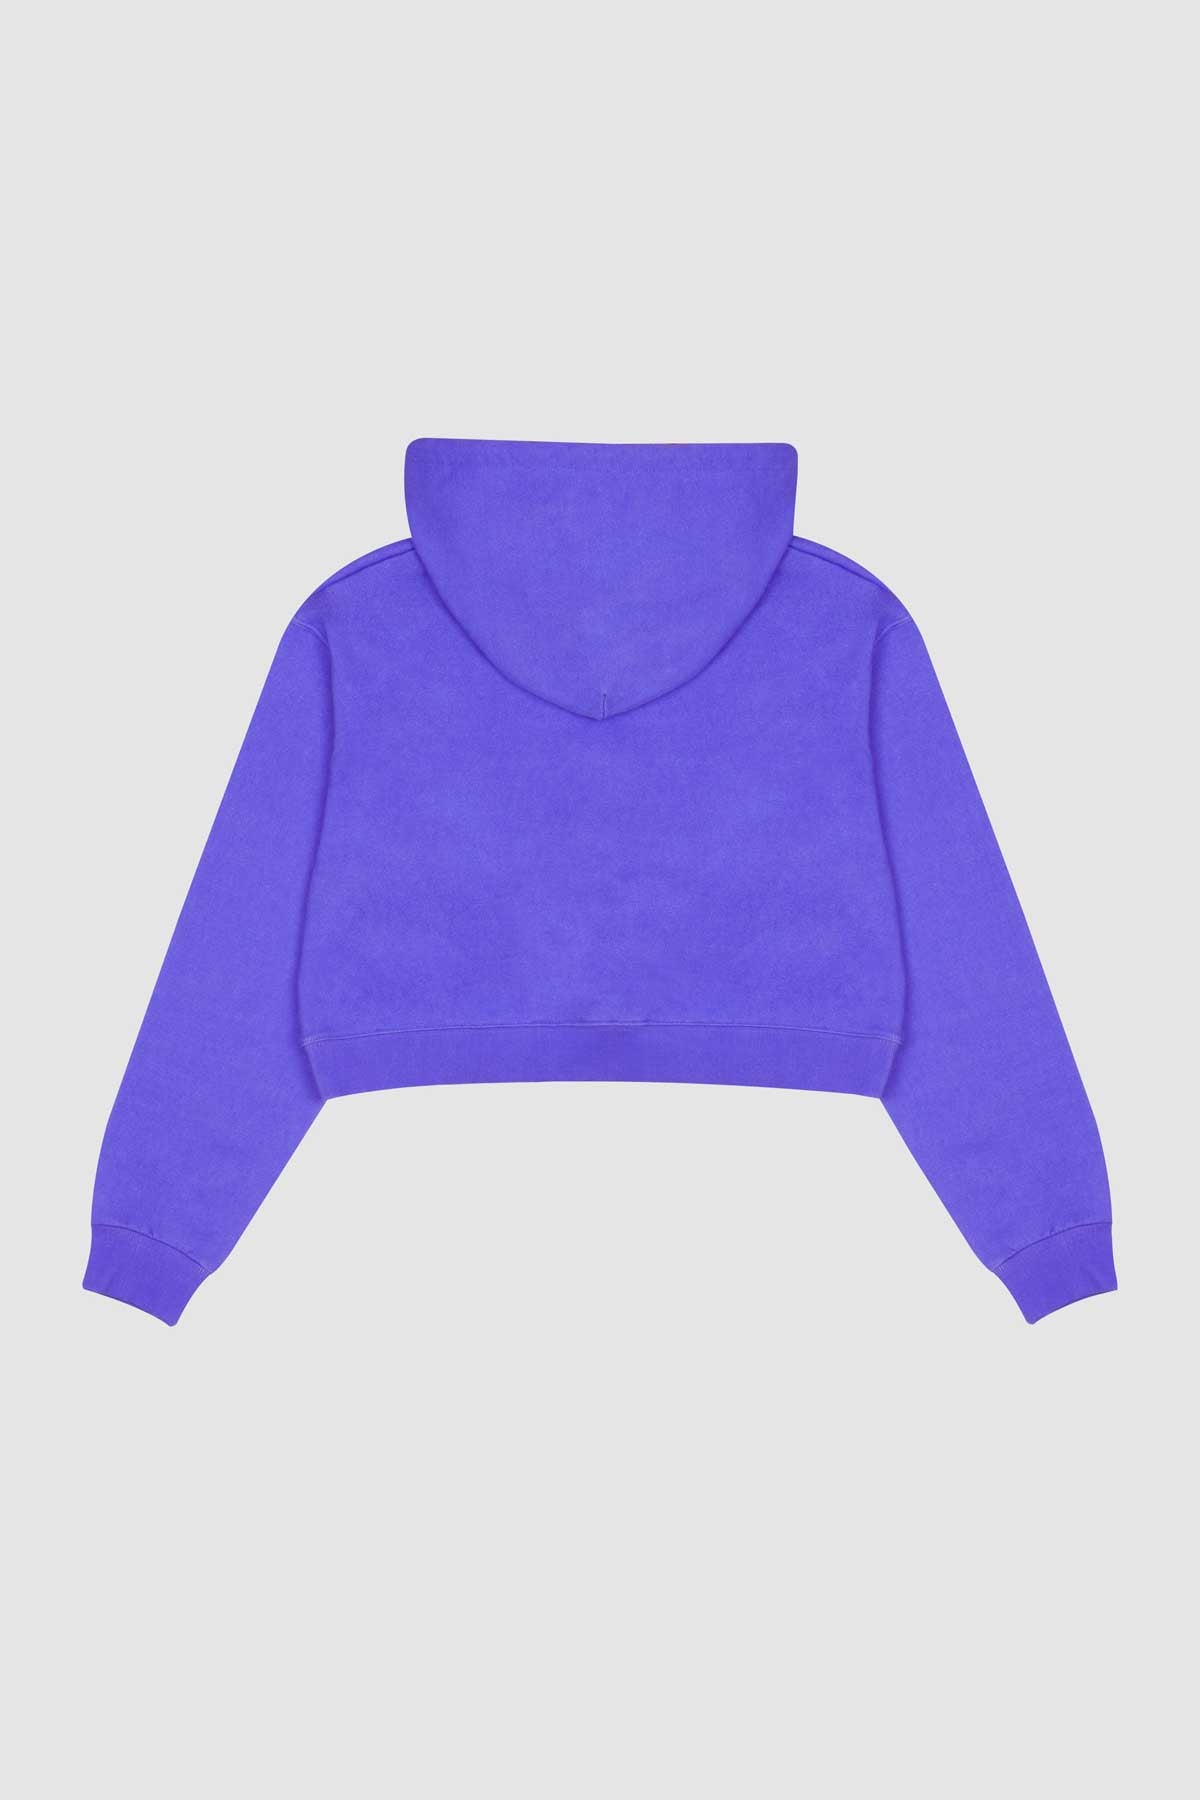 Photo of Violet Kush Women's Cropped Hoodie, number 5